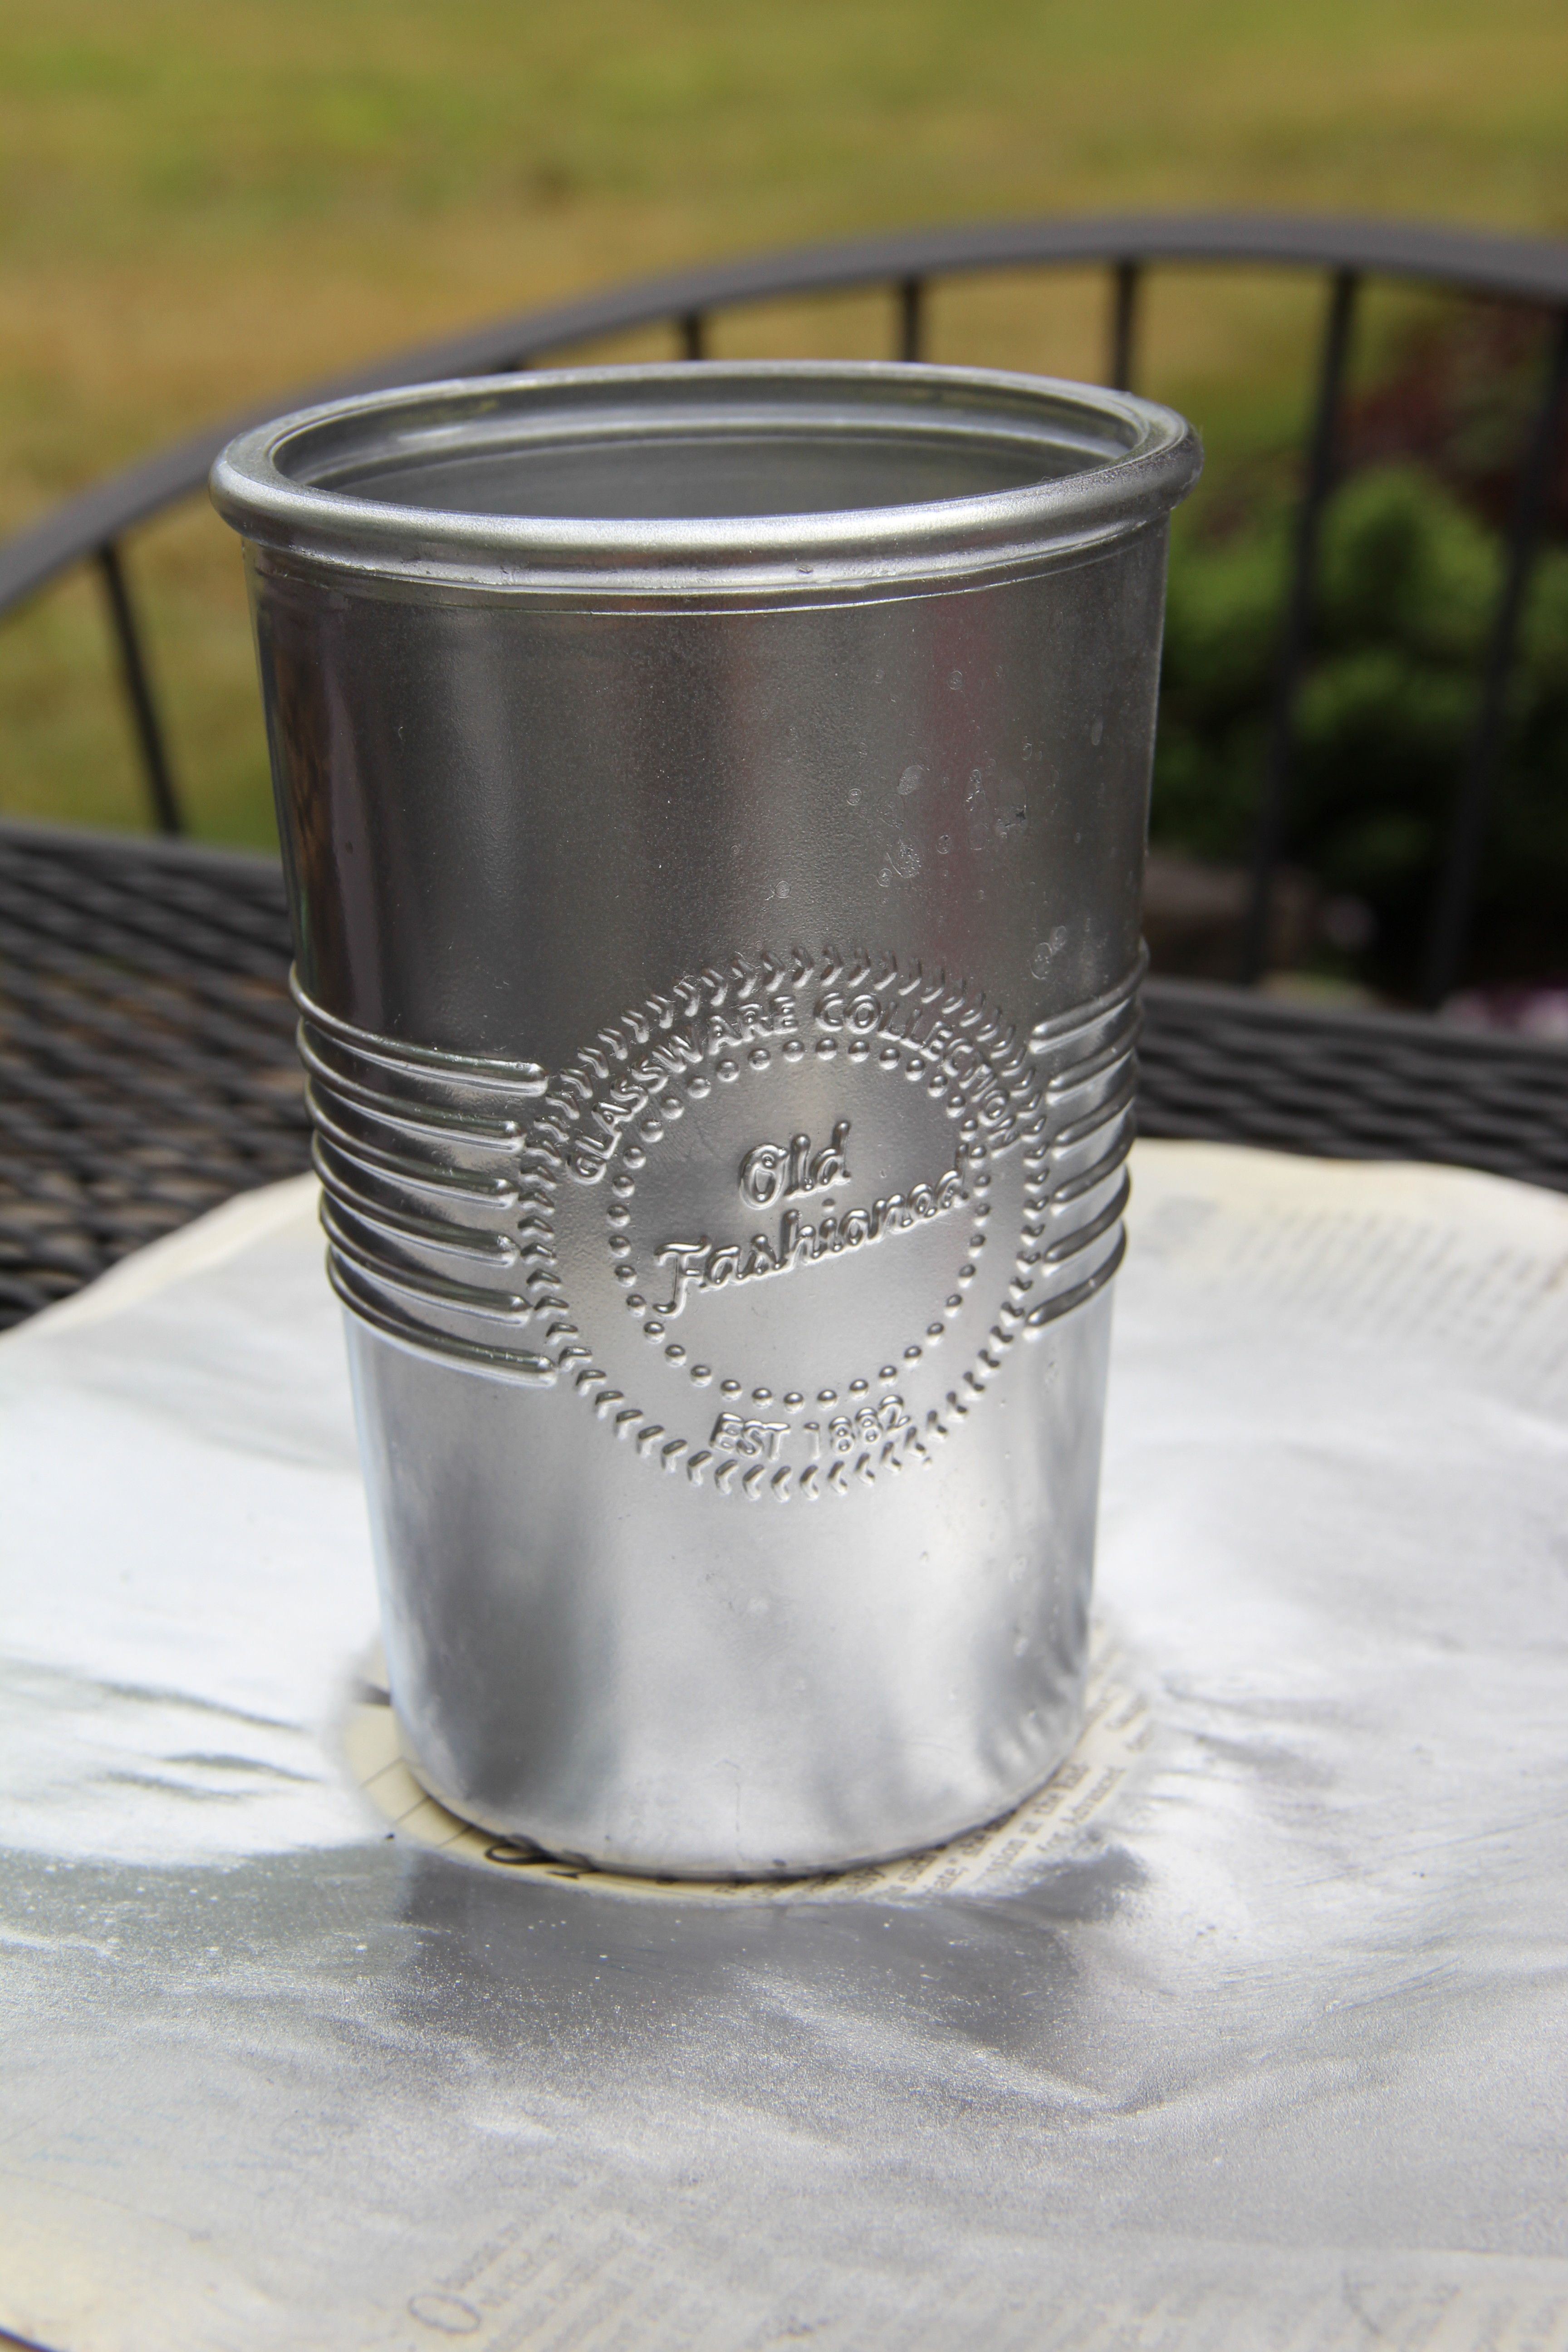 Diy old pewter mint julep cups joy filled days my 2 year old foster son squirted me and the cup with his water blaster lol it did no harm and he thought reviewsmspy